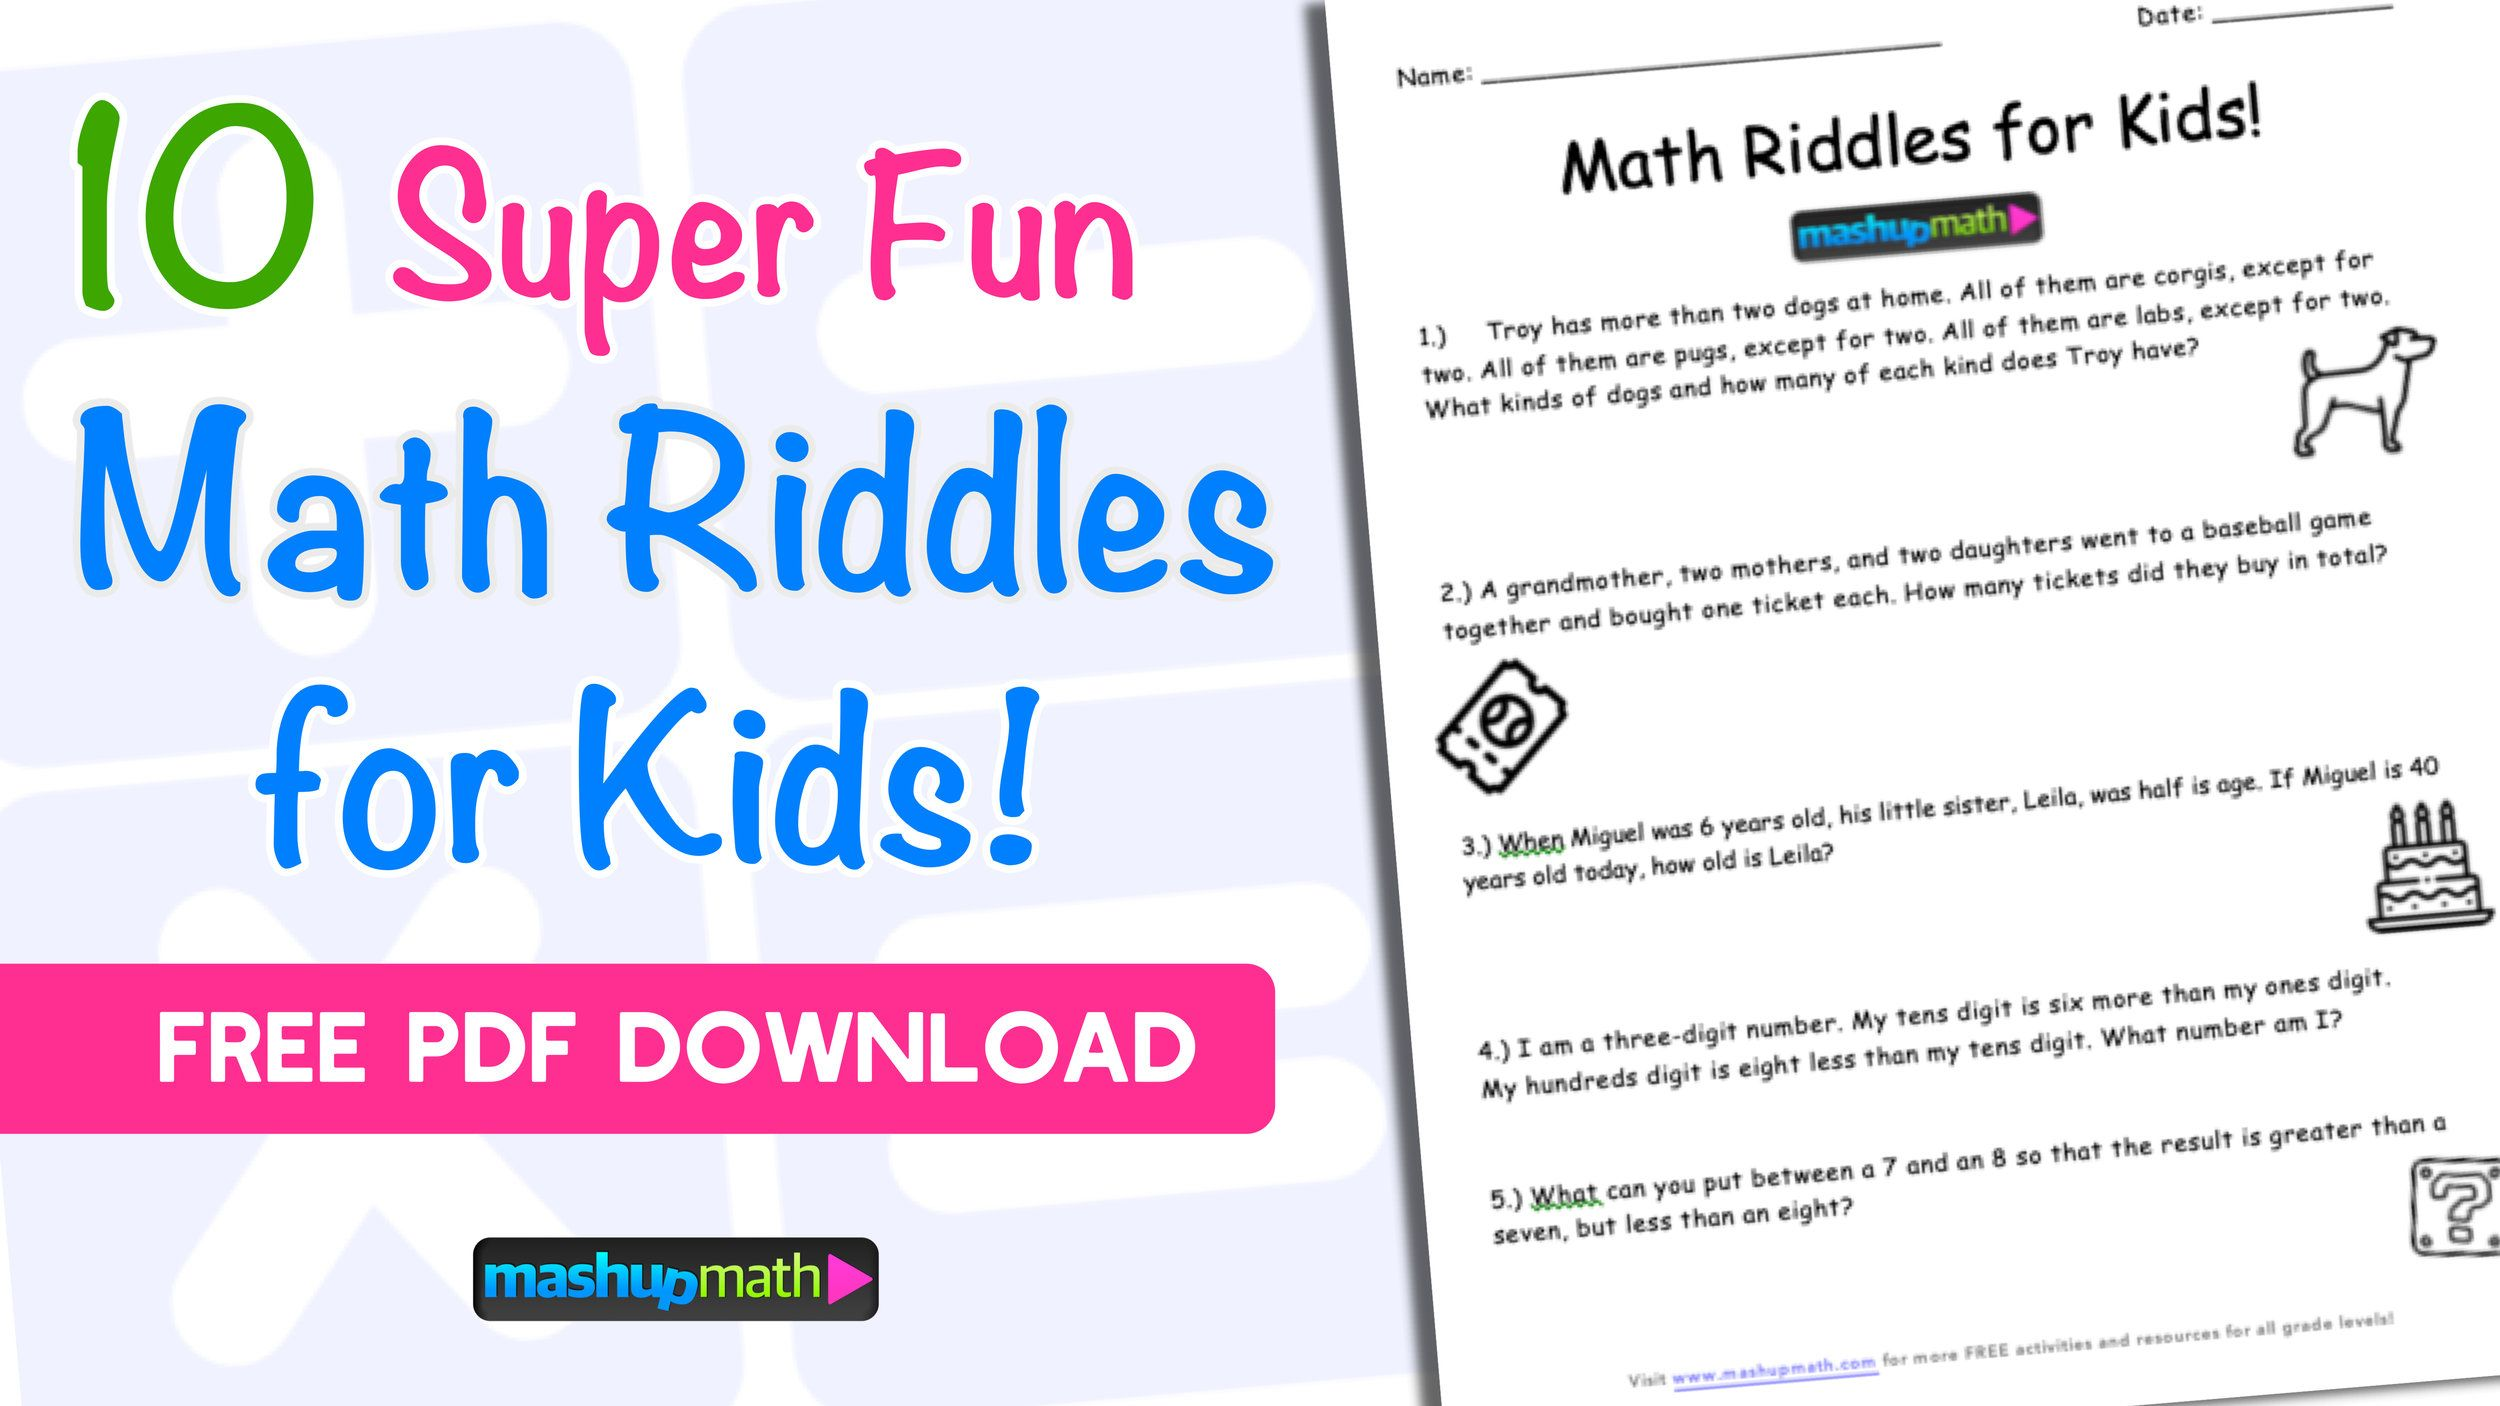 10 Super Fun Math Riddles For Kids Ages 10 With Answers Mashup Math Math Riddles Math Riddles With Answers Math Riddles Brain Teasers